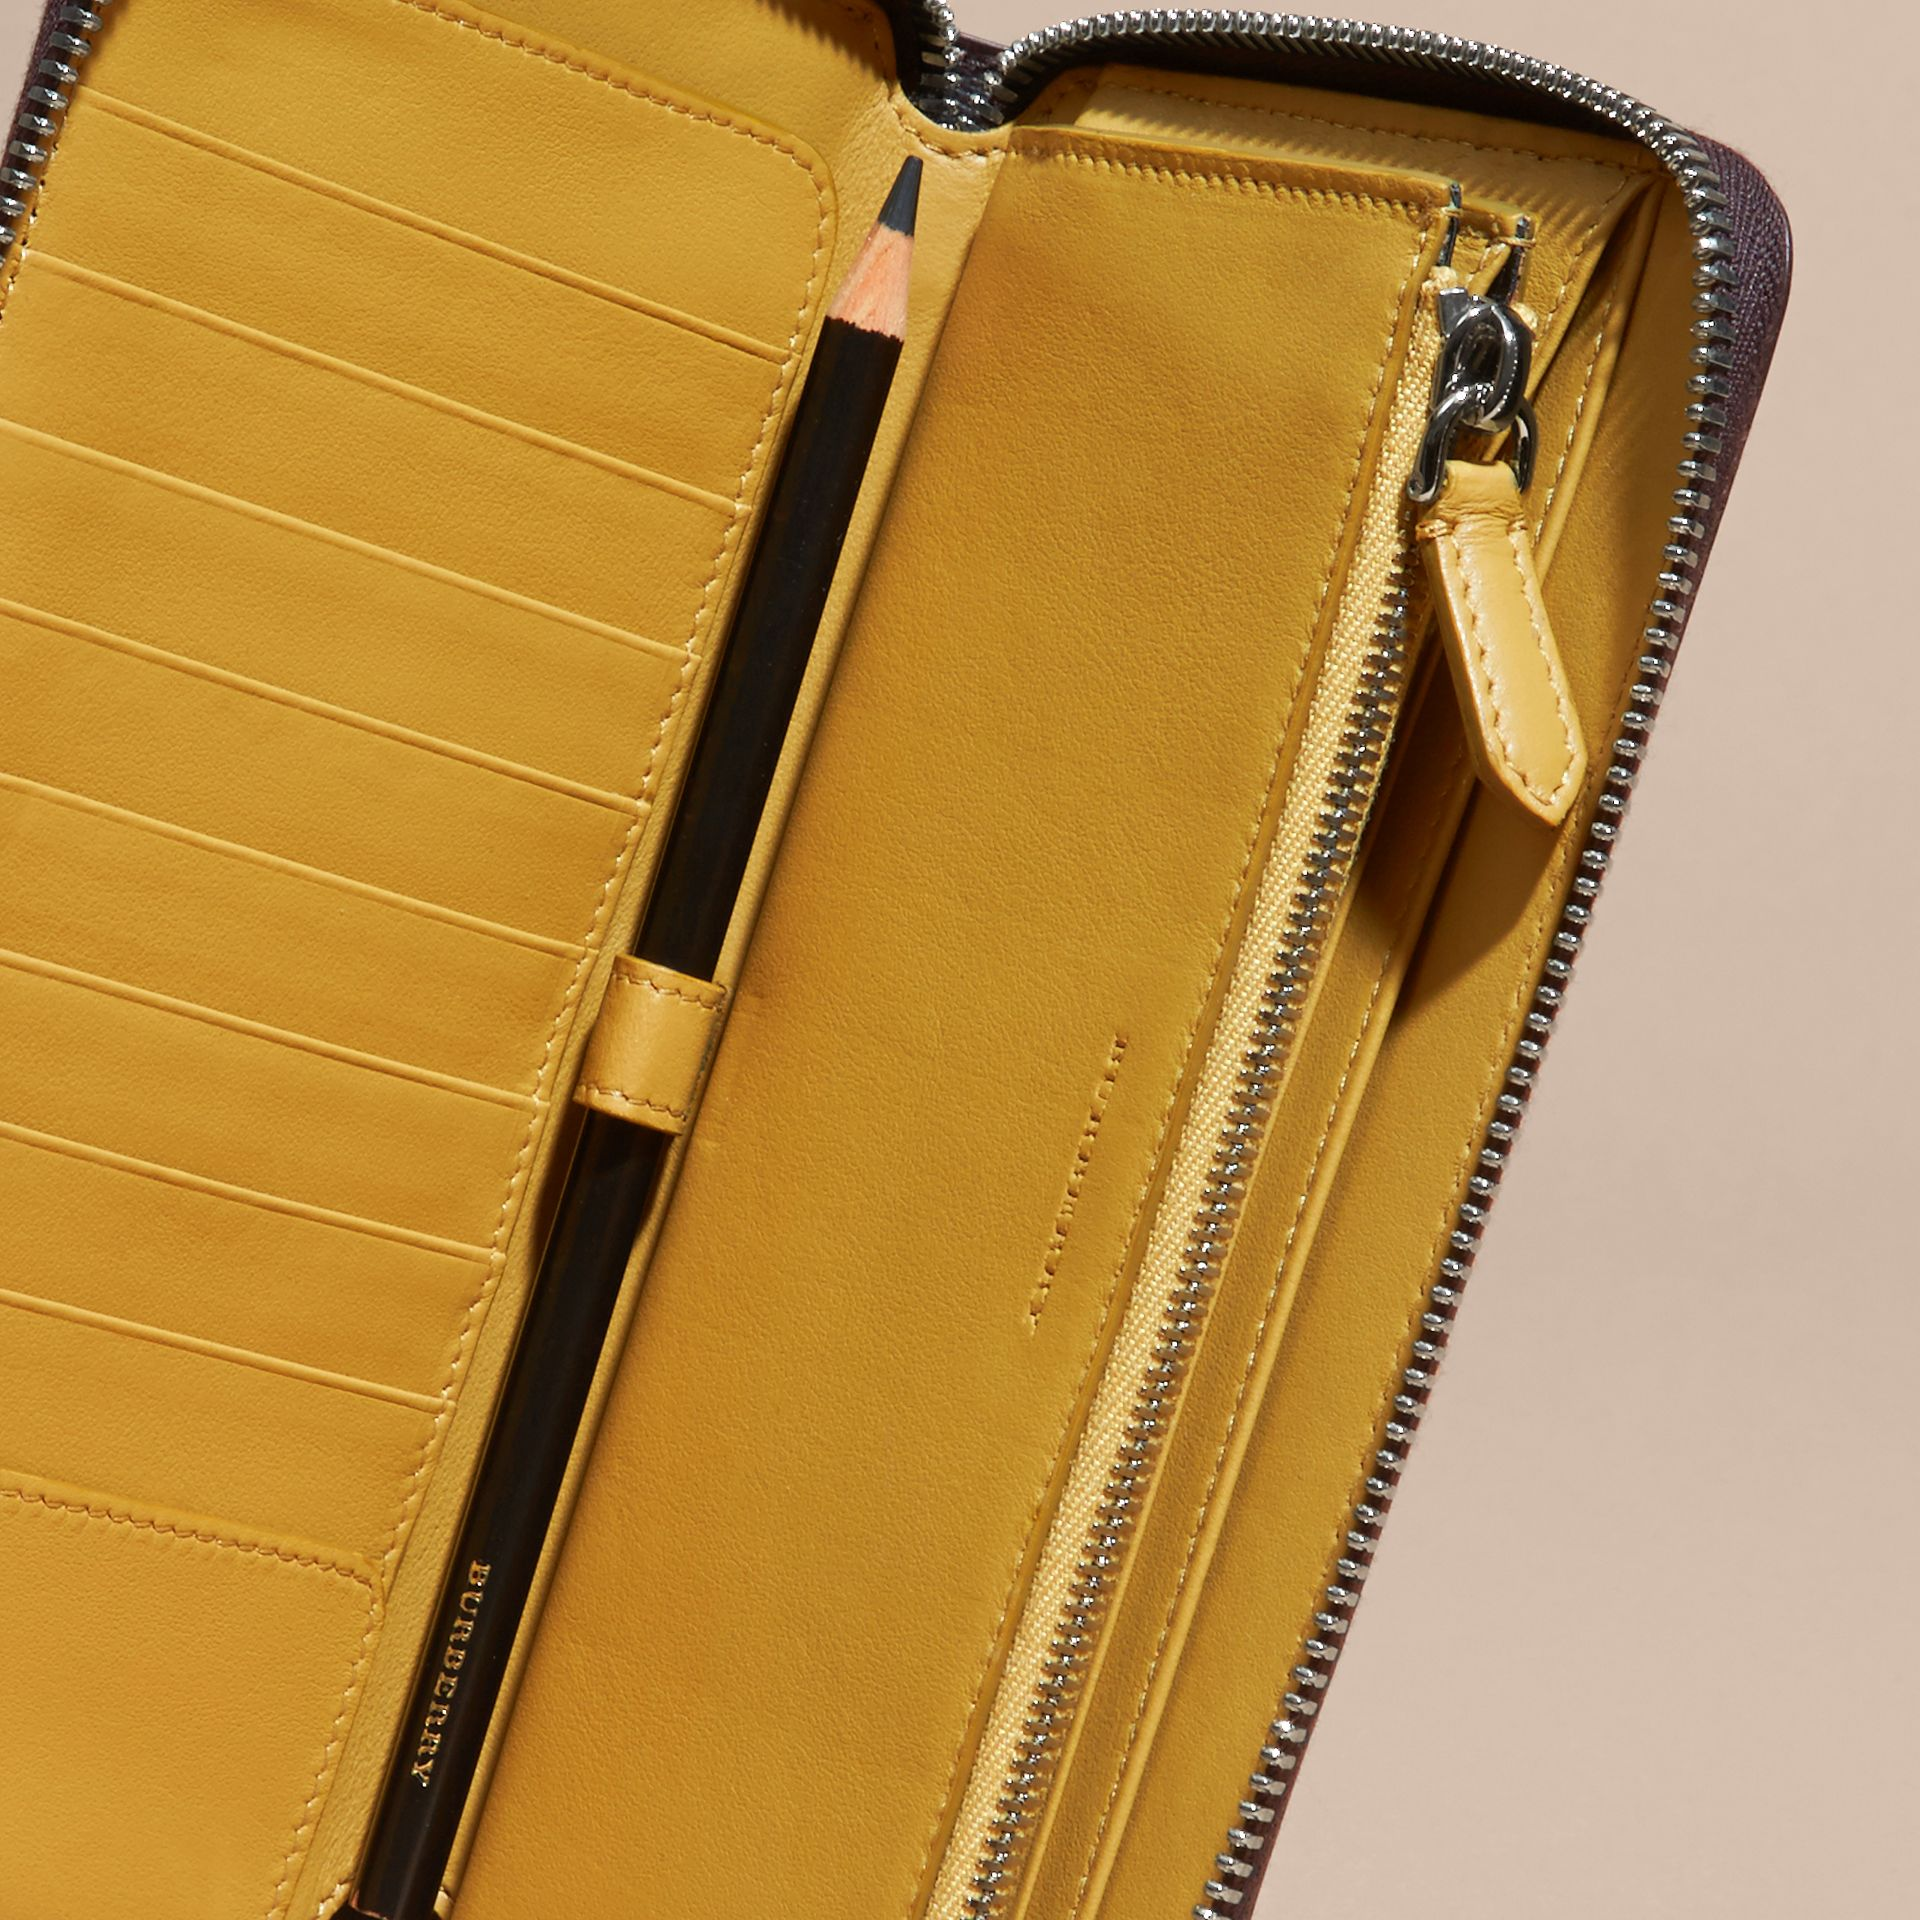 Border Detail London Leather Ziparound Wallet Peppercorn - gallery image 5